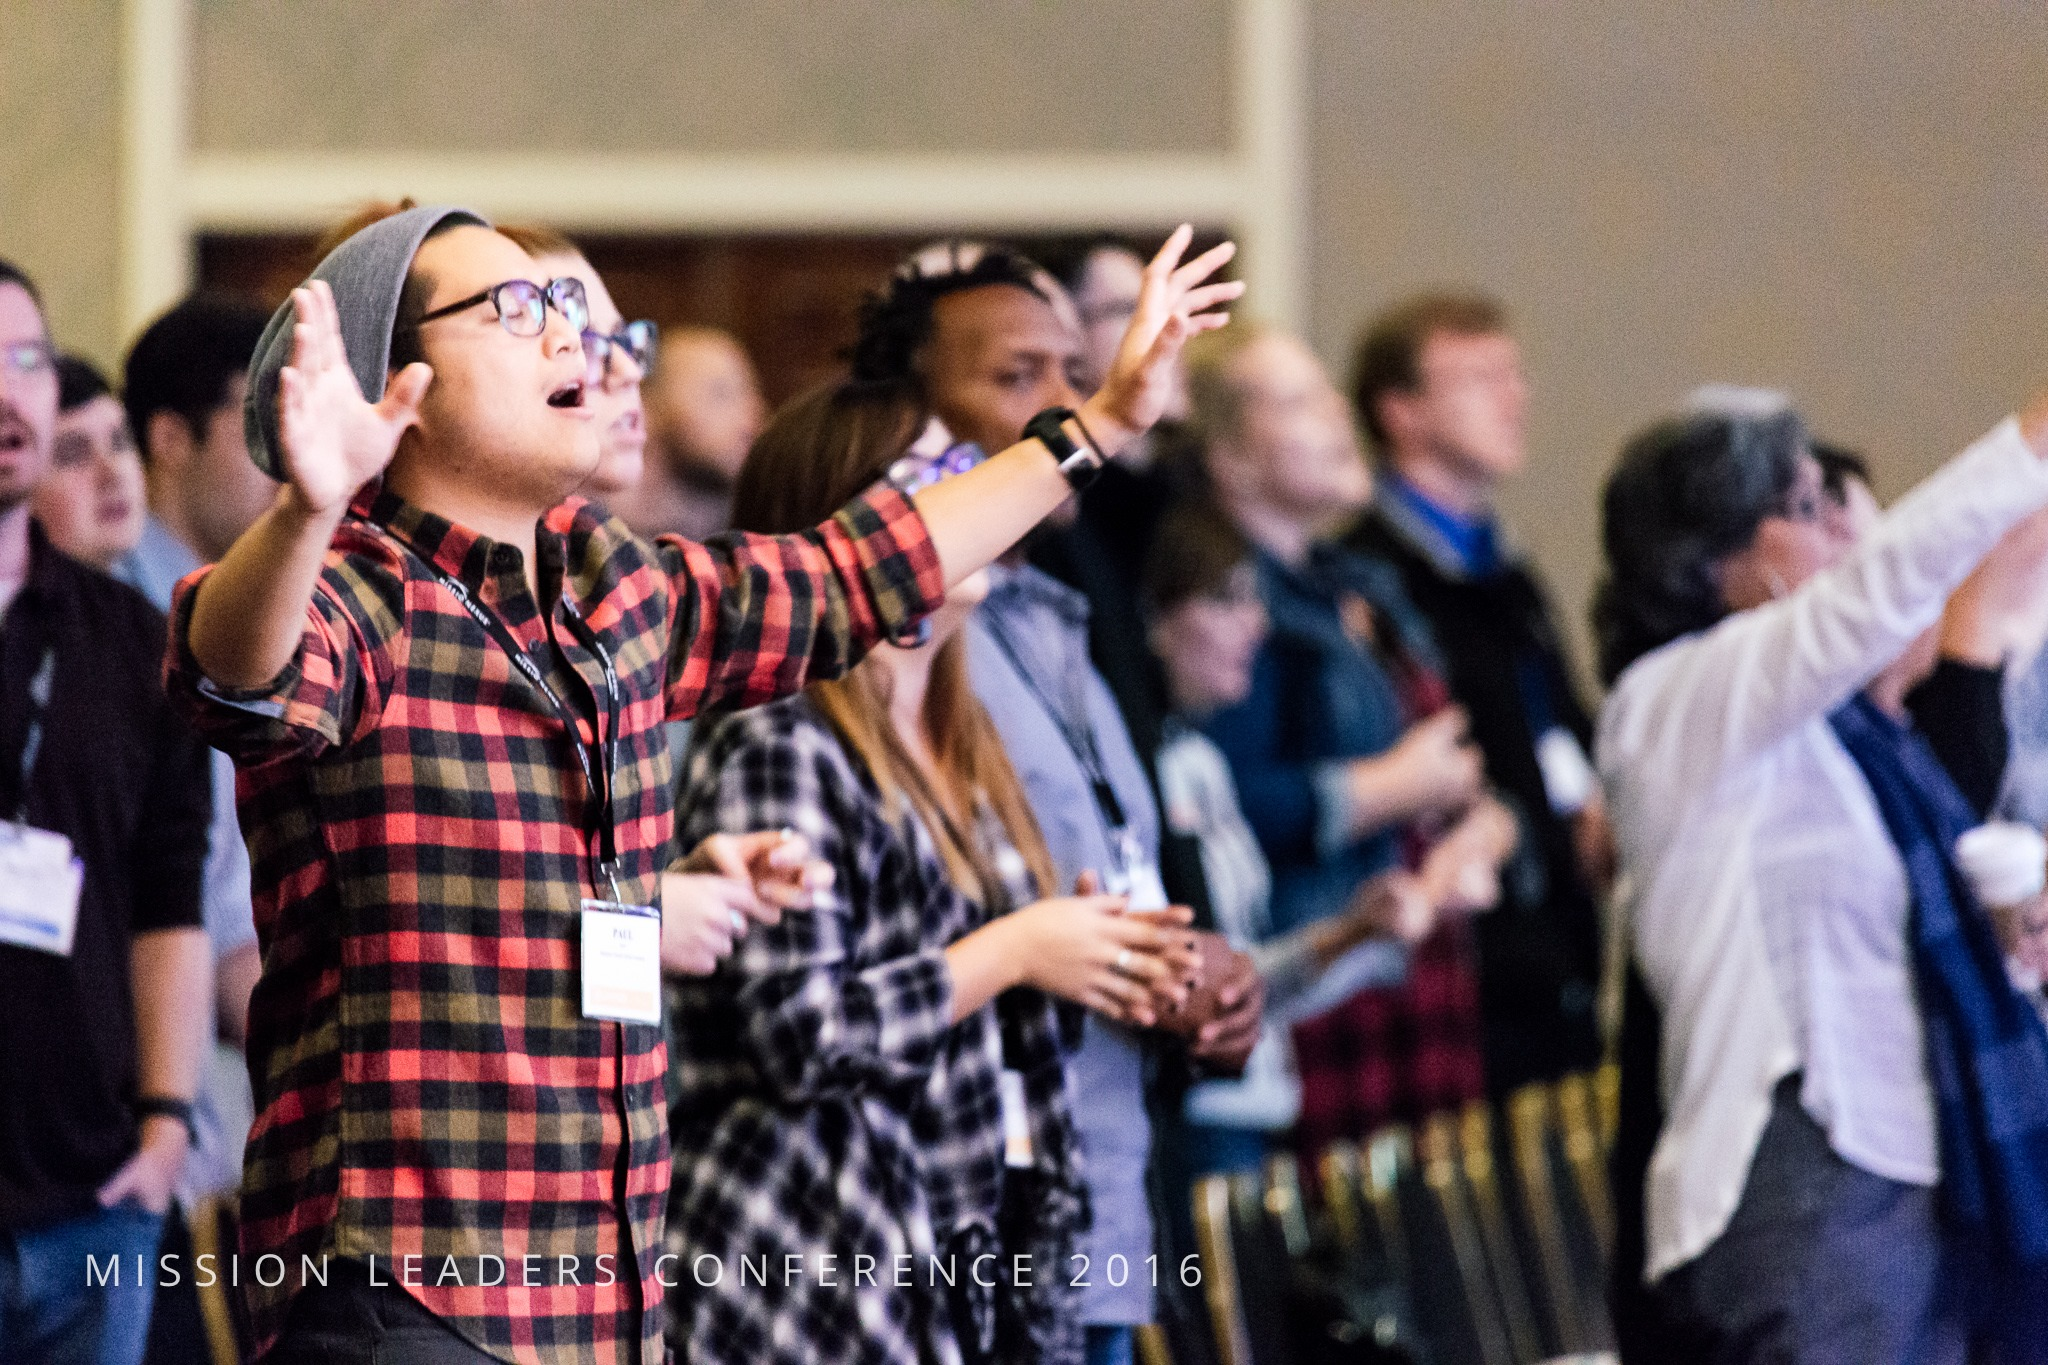 Unity and collaboration at Mission Leader Conference